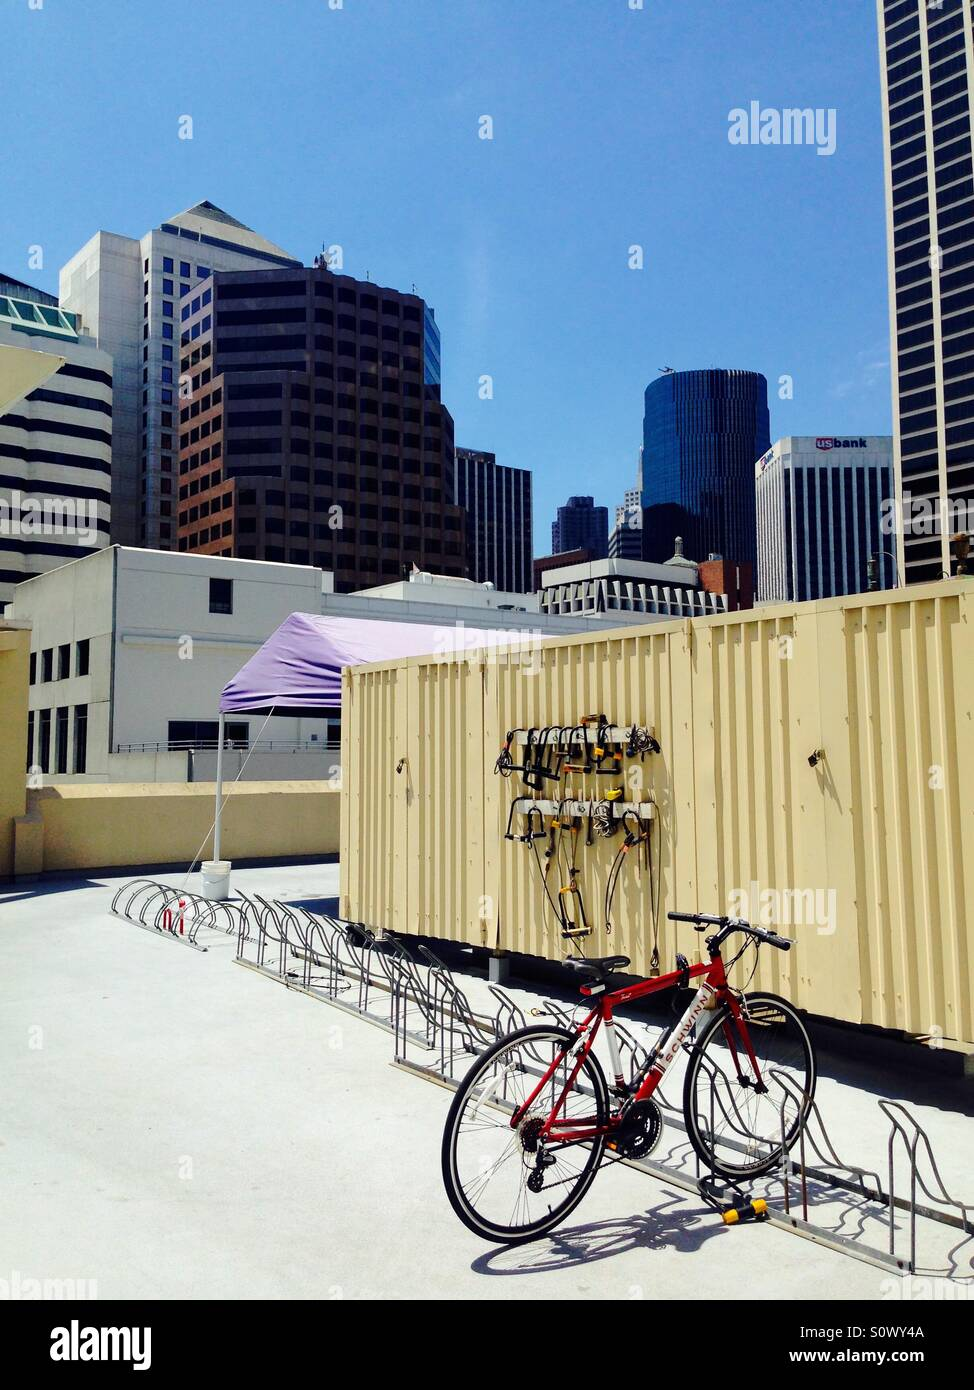 My bike on a rooftop in SF - Stock Image